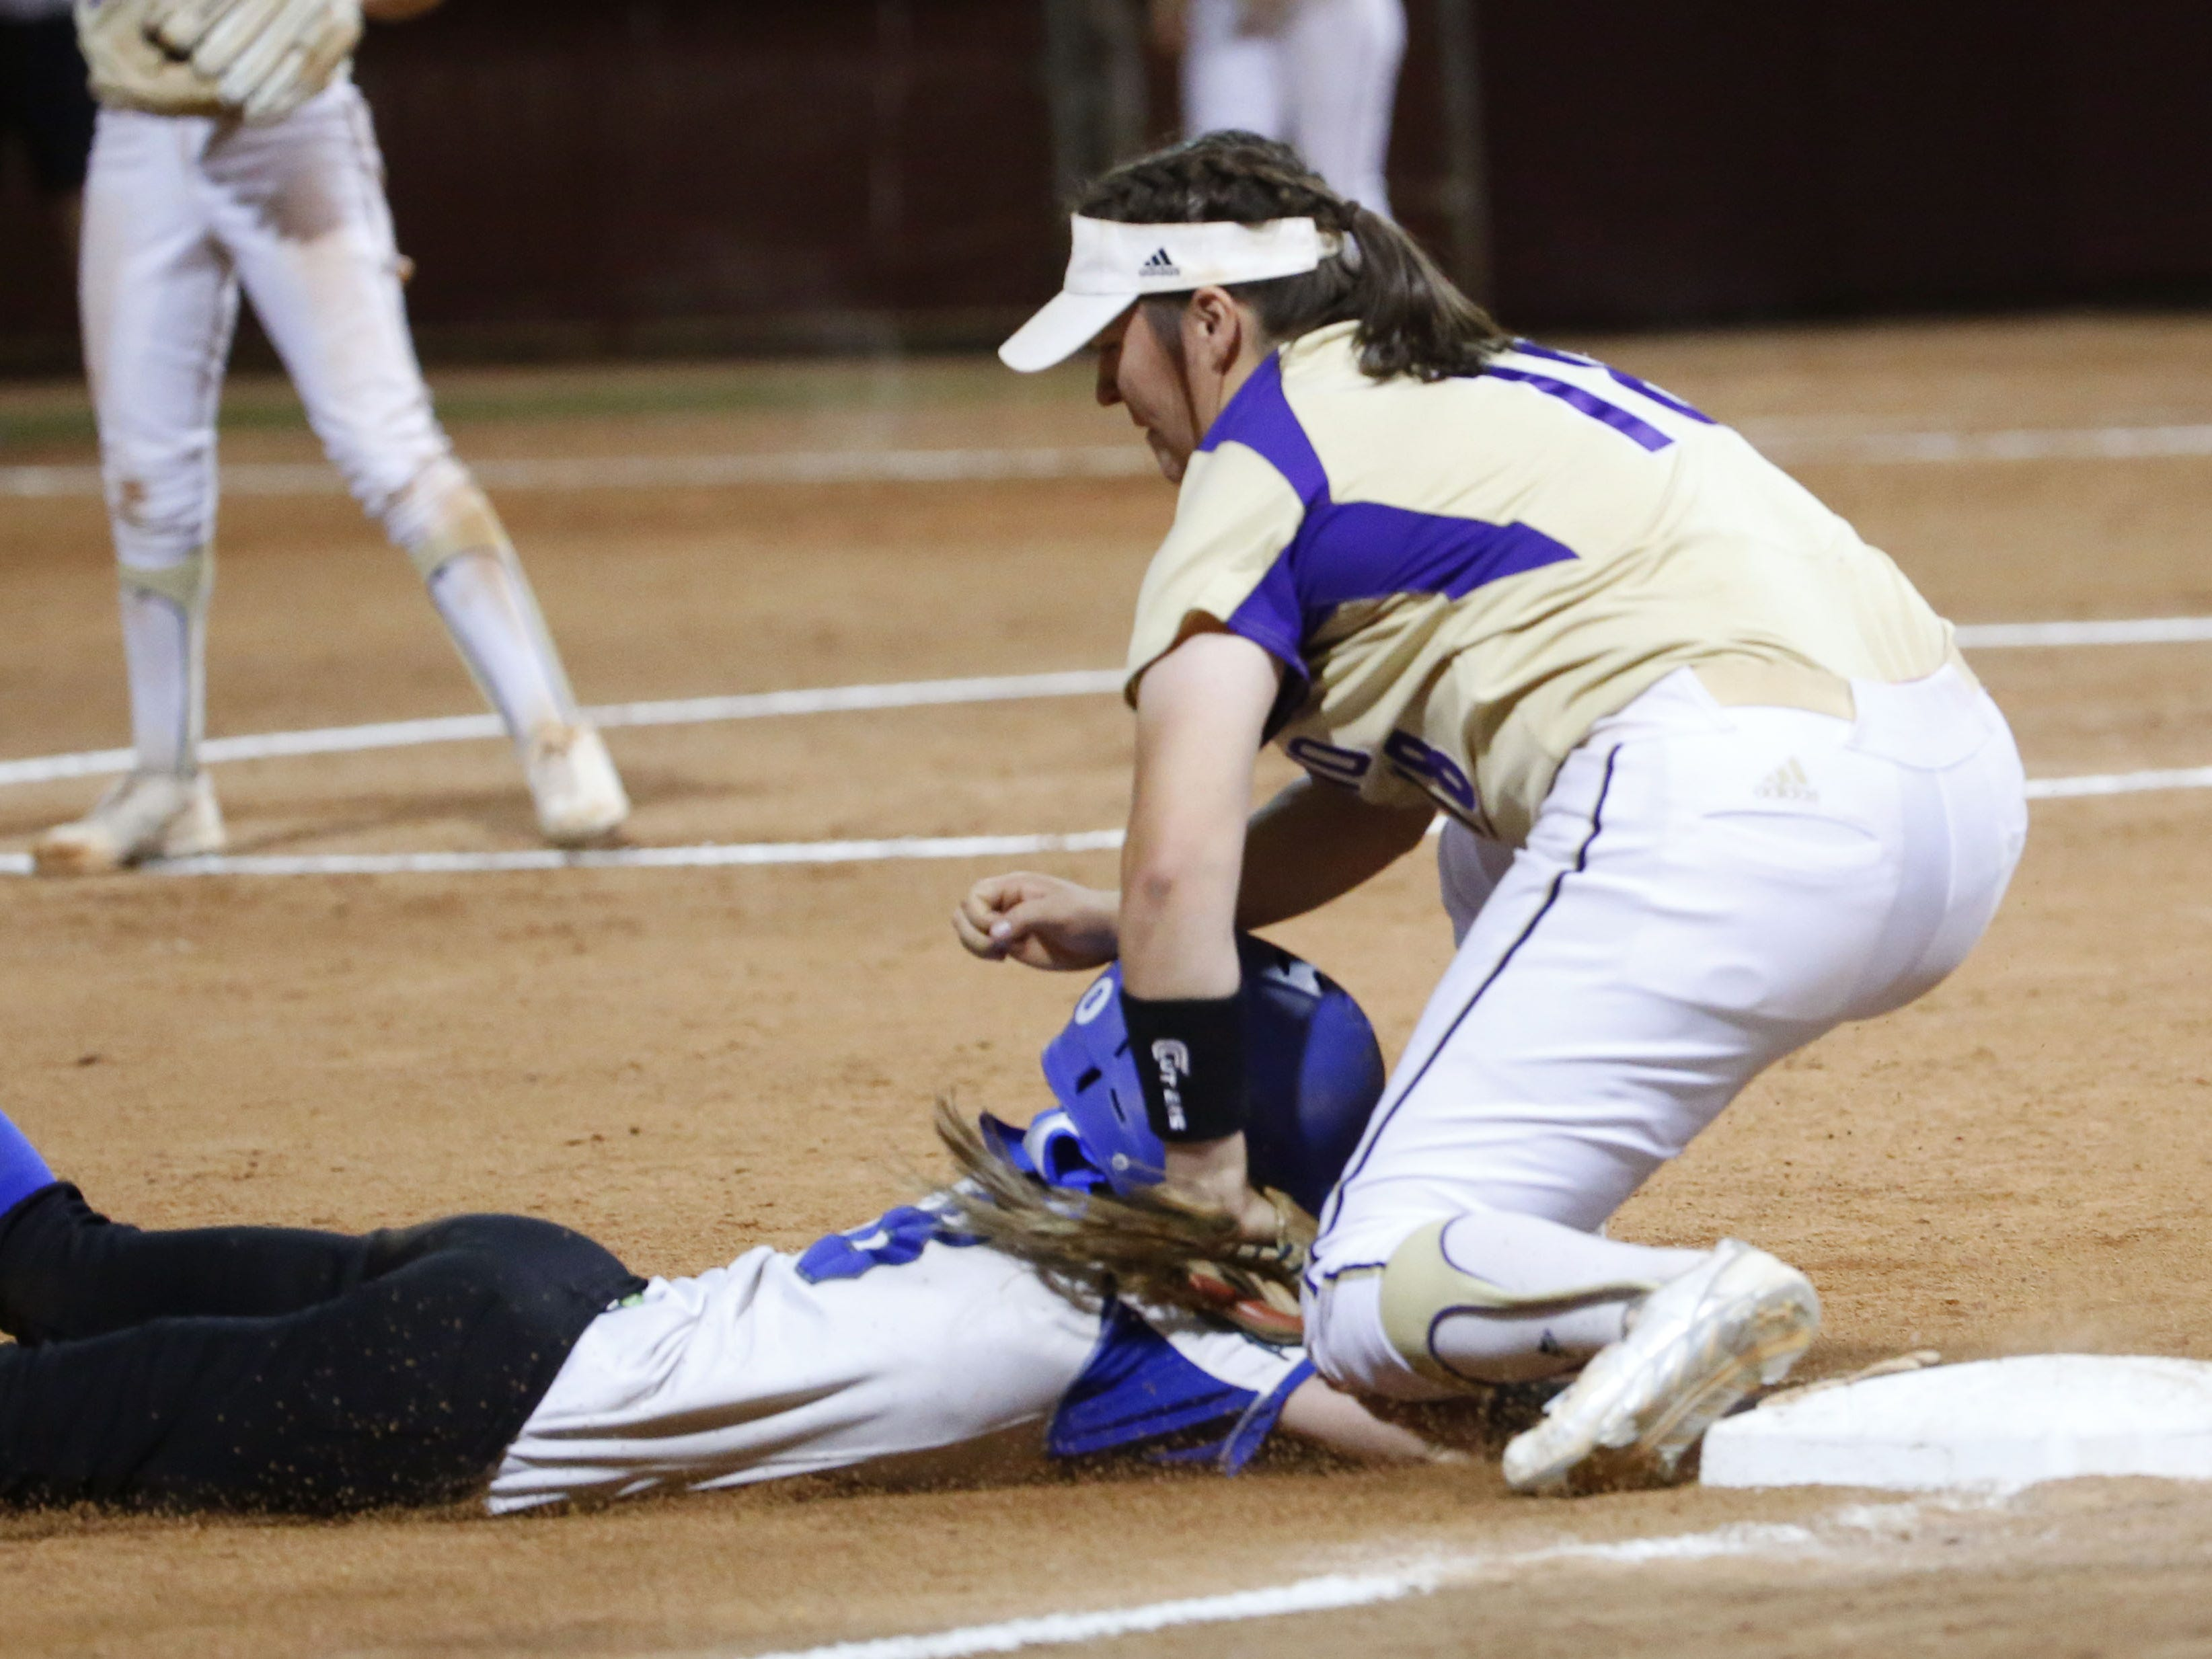 Snowflake center fielder Kaylee Thomas (8) slides in into third ahead of the tag by Sabino's Riley Carley (18) during the 3A softball state championship game in Tempe May 6, 2019.